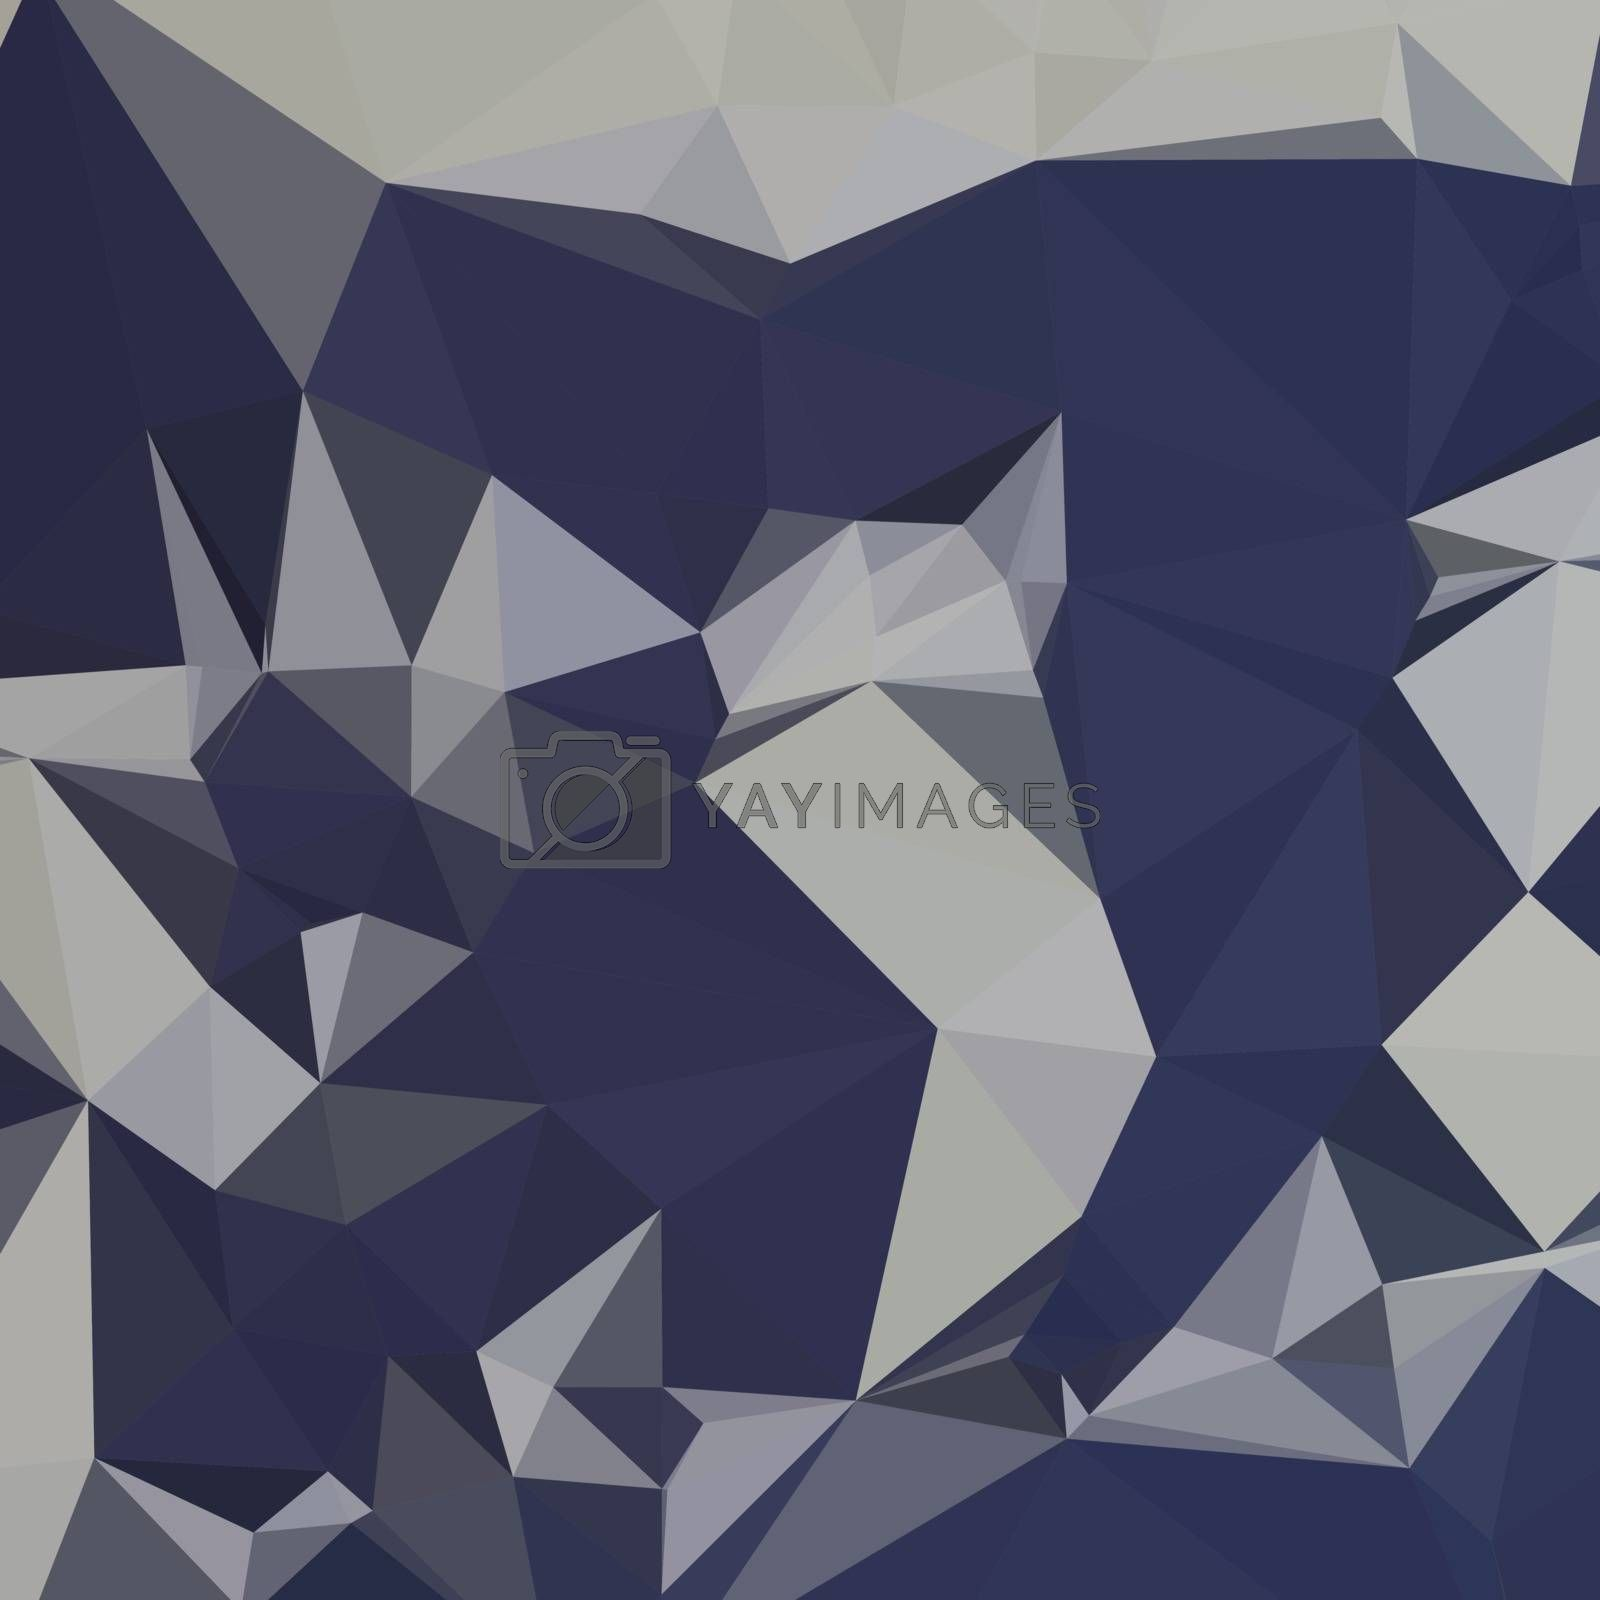 Low polygon style illustration of cool black blue abstract geometric background.